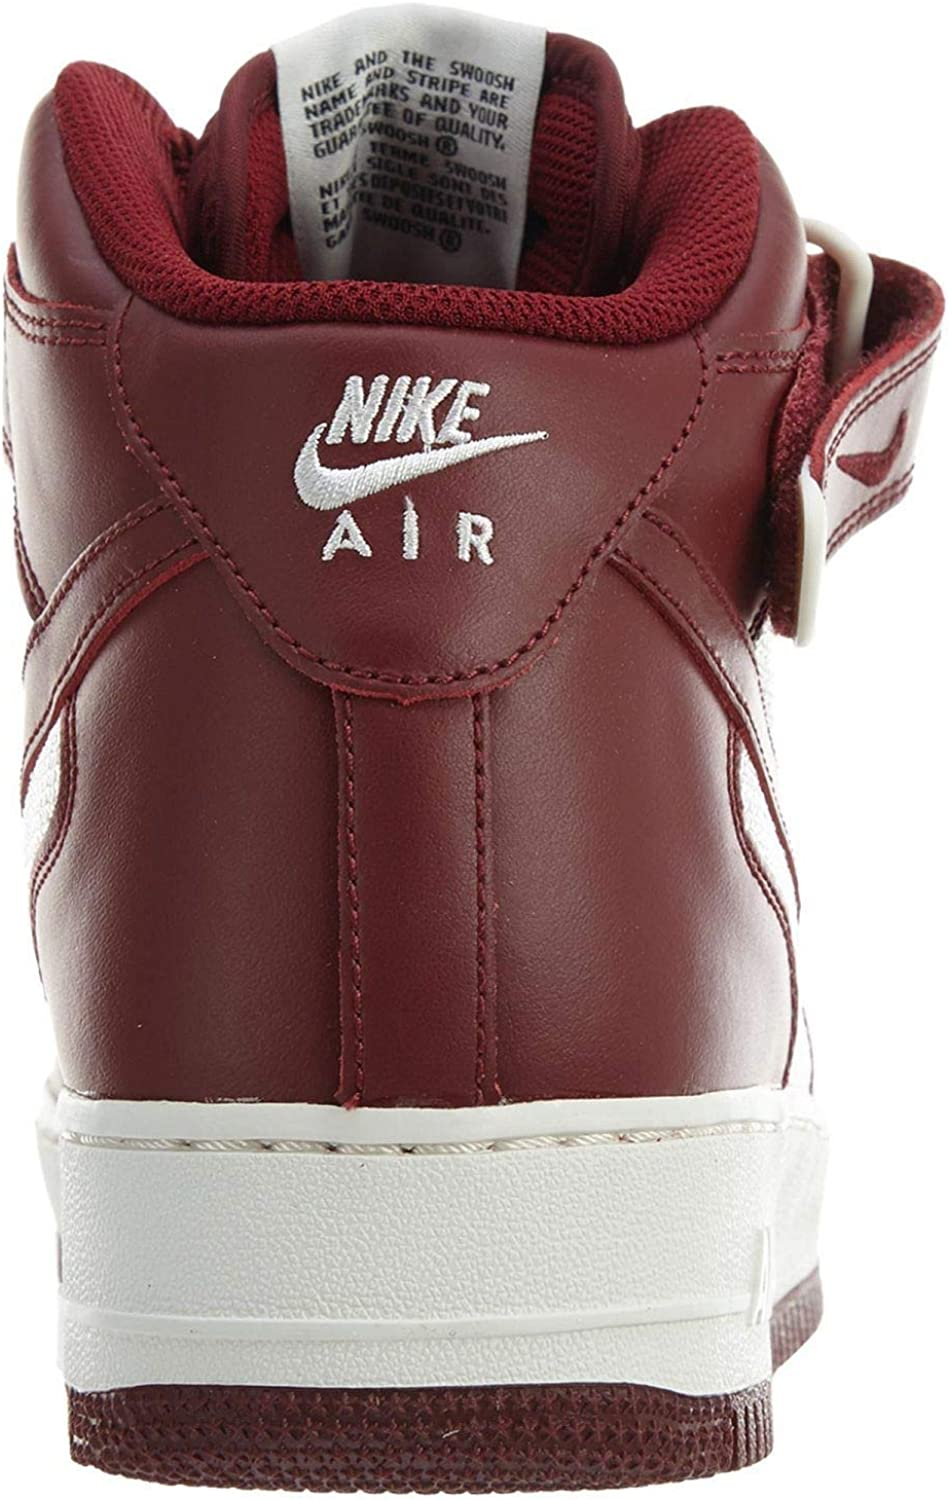 Nike, Uomo, Air Force 1 Mid 07 Team Red Summit White, PelleMesh, Sneakers Alte, Rosso, 40 EU